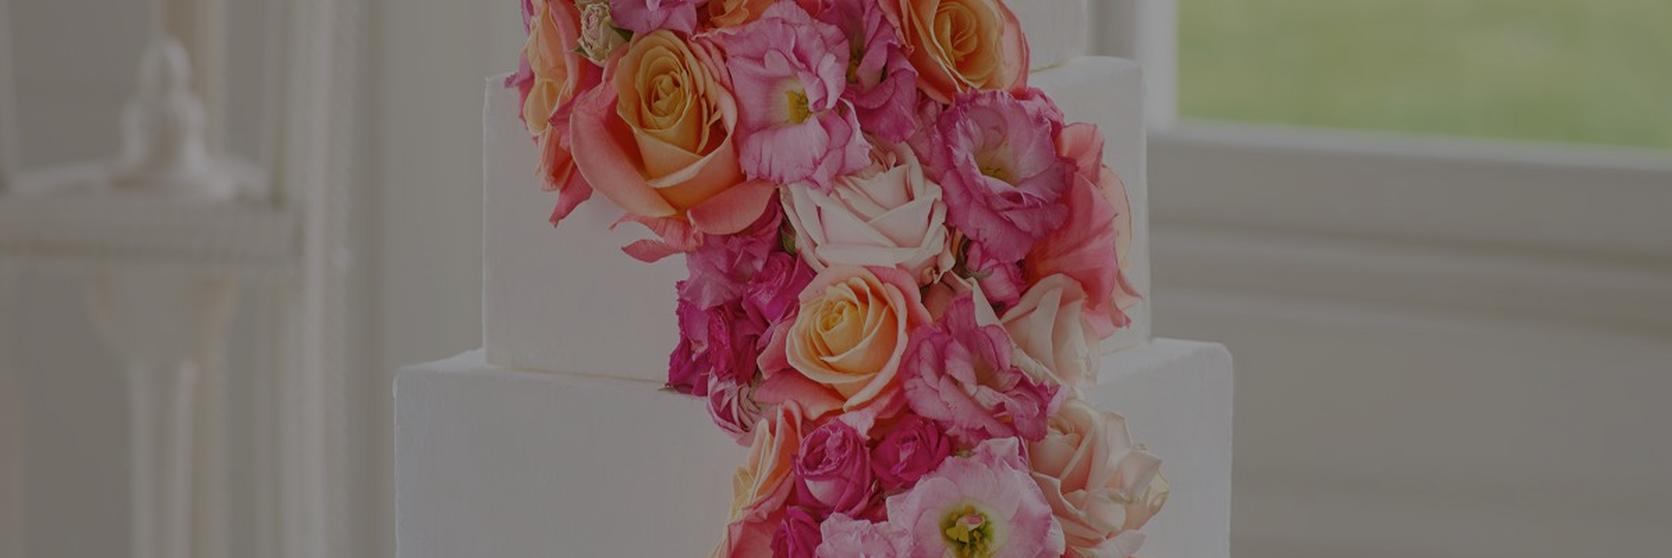 wedding-cake-ideas-with-real-flowers-1